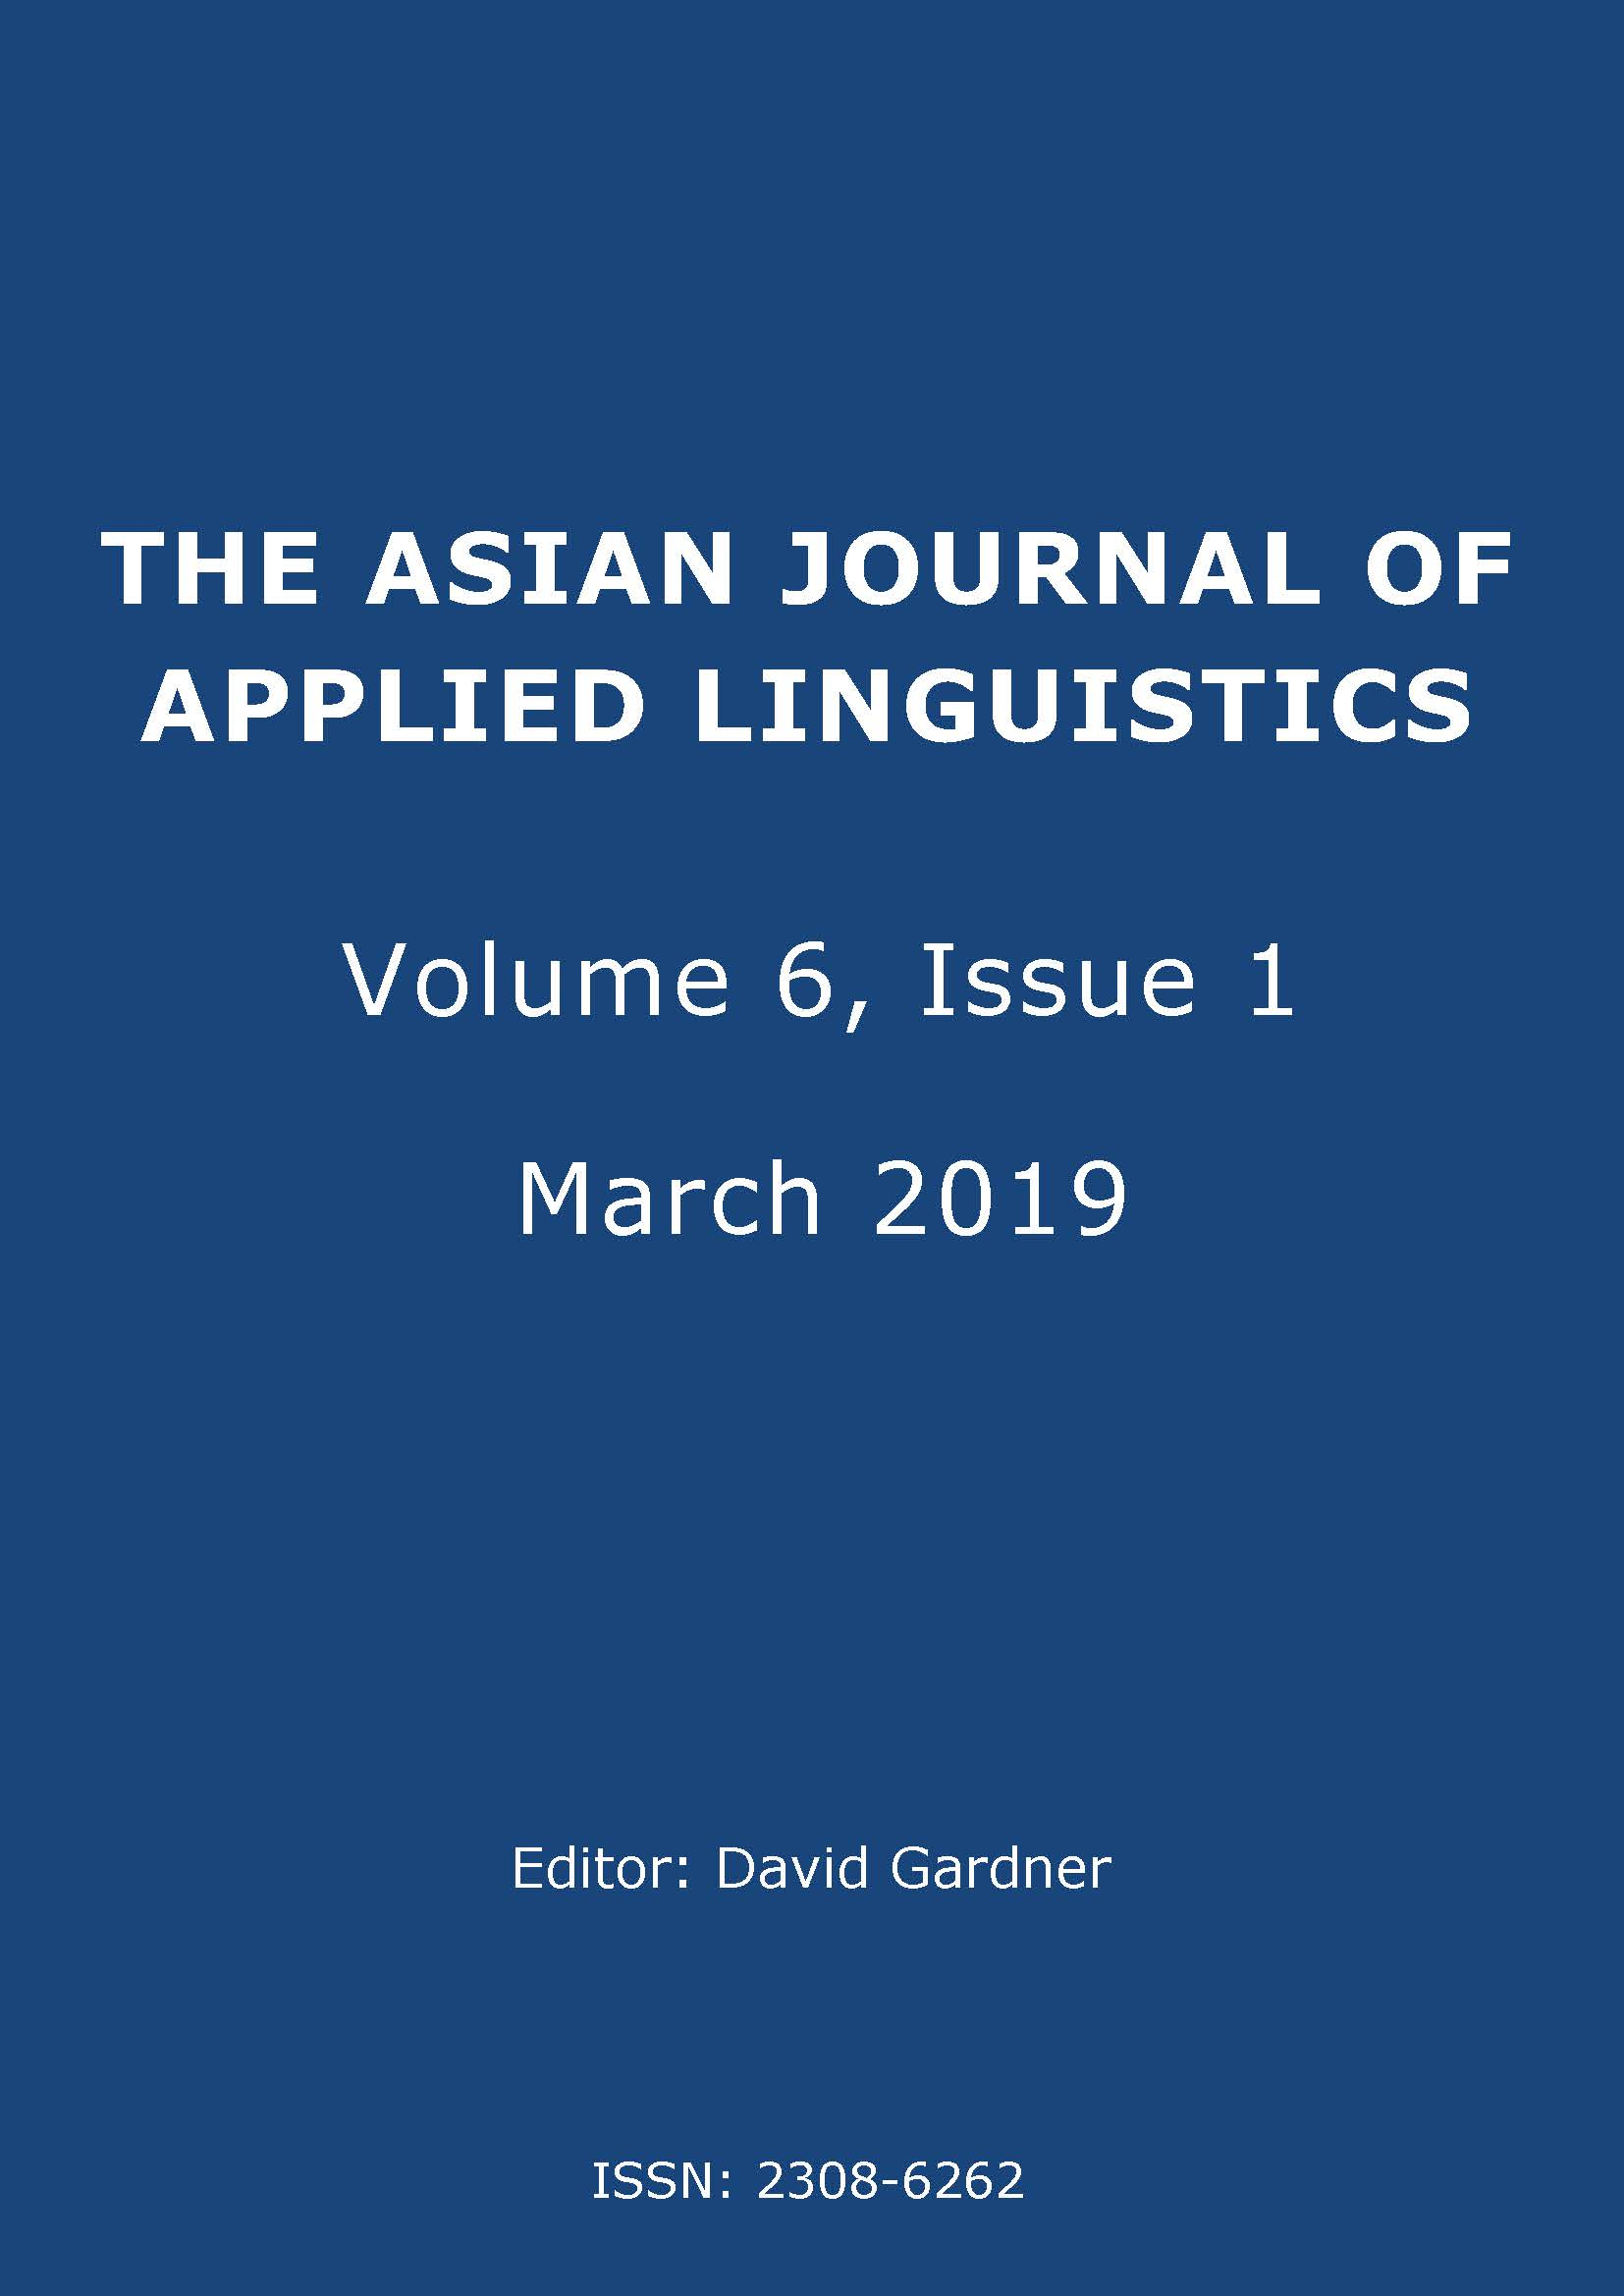 The Asian Journal of Applied Linguistics, Volume 6, Number 1